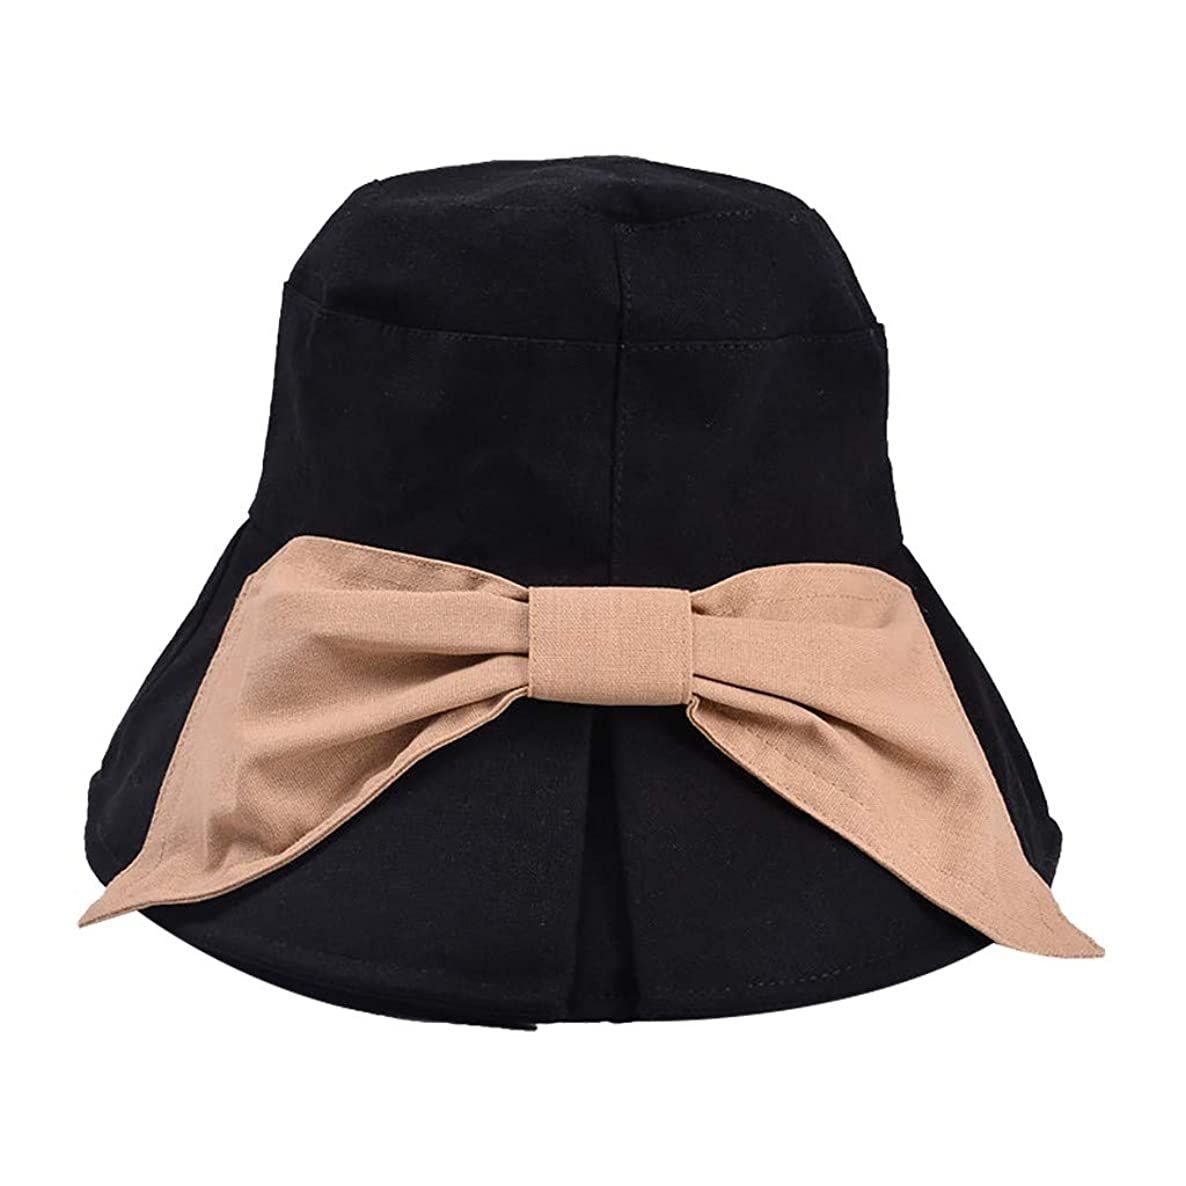 Outique Ladies Sun hat Women Casual Solid Wide Brimmed Floppy Foldable Beach Hat with Bow